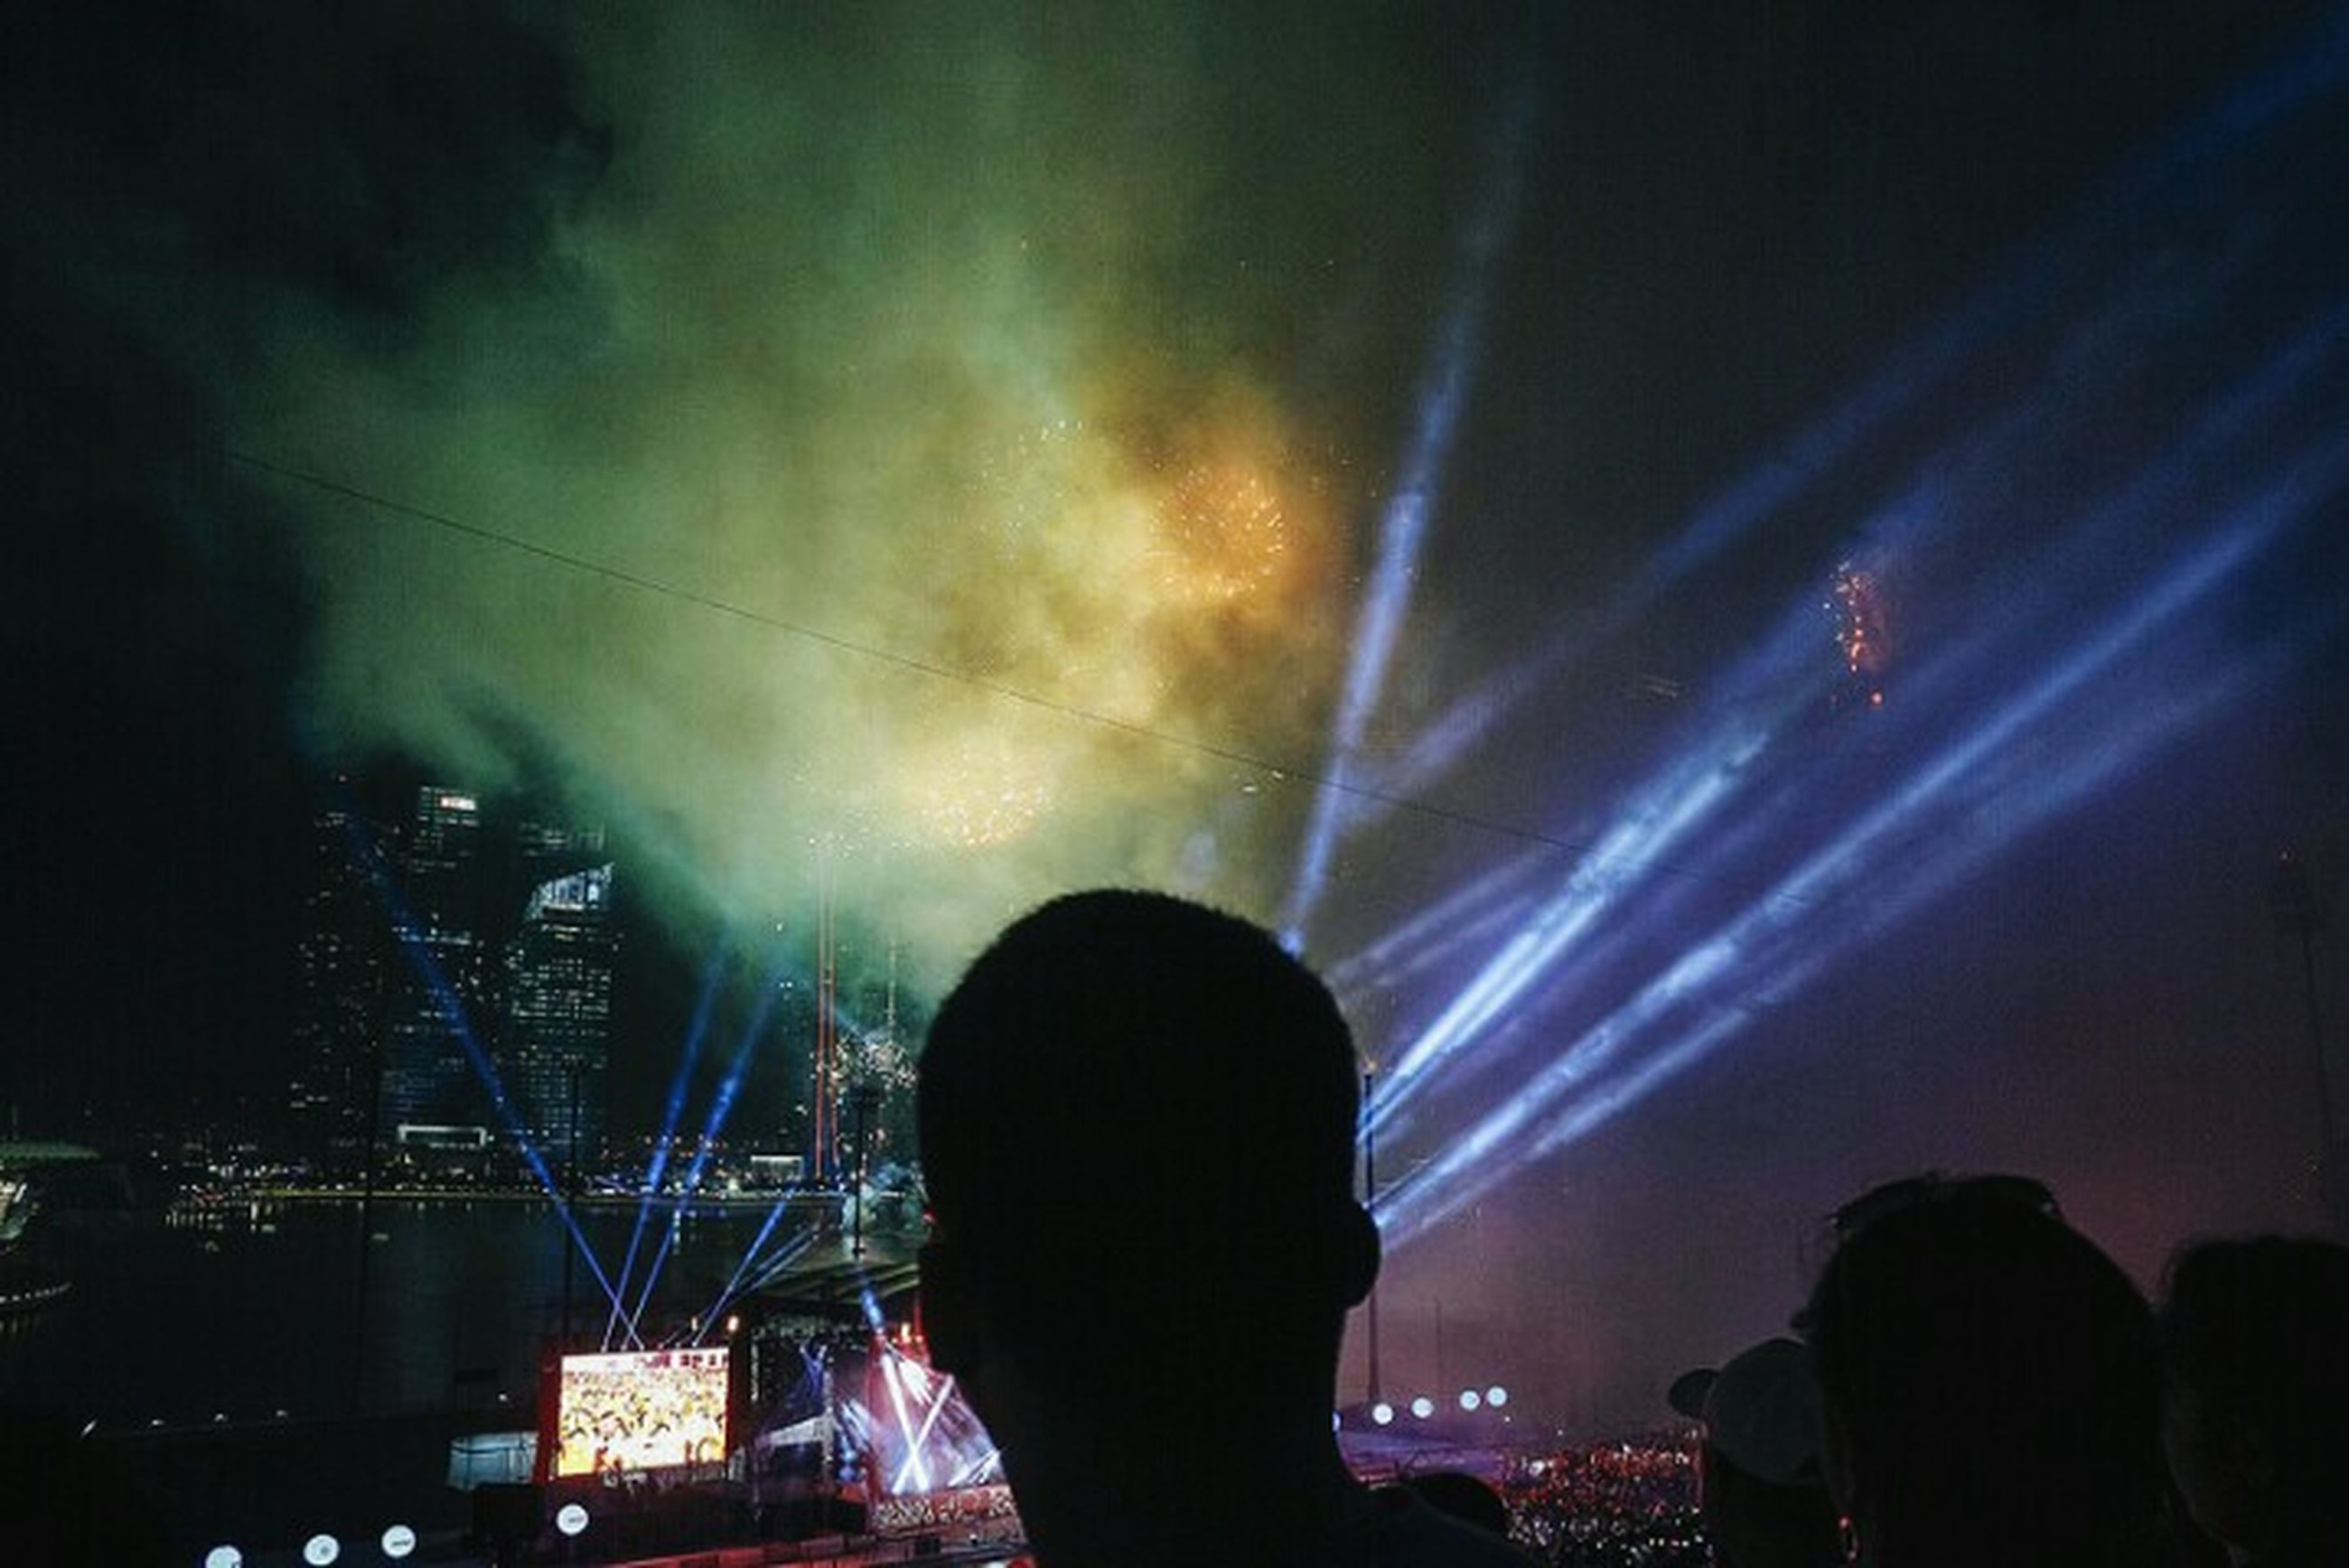 night, illuminated, silhouette, sky, lifestyles, arts culture and entertainment, men, leisure activity, lighting equipment, long exposure, event, light - natural phenomenon, nightlife, low angle view, rear view, light beam, unrecognizable person, dark